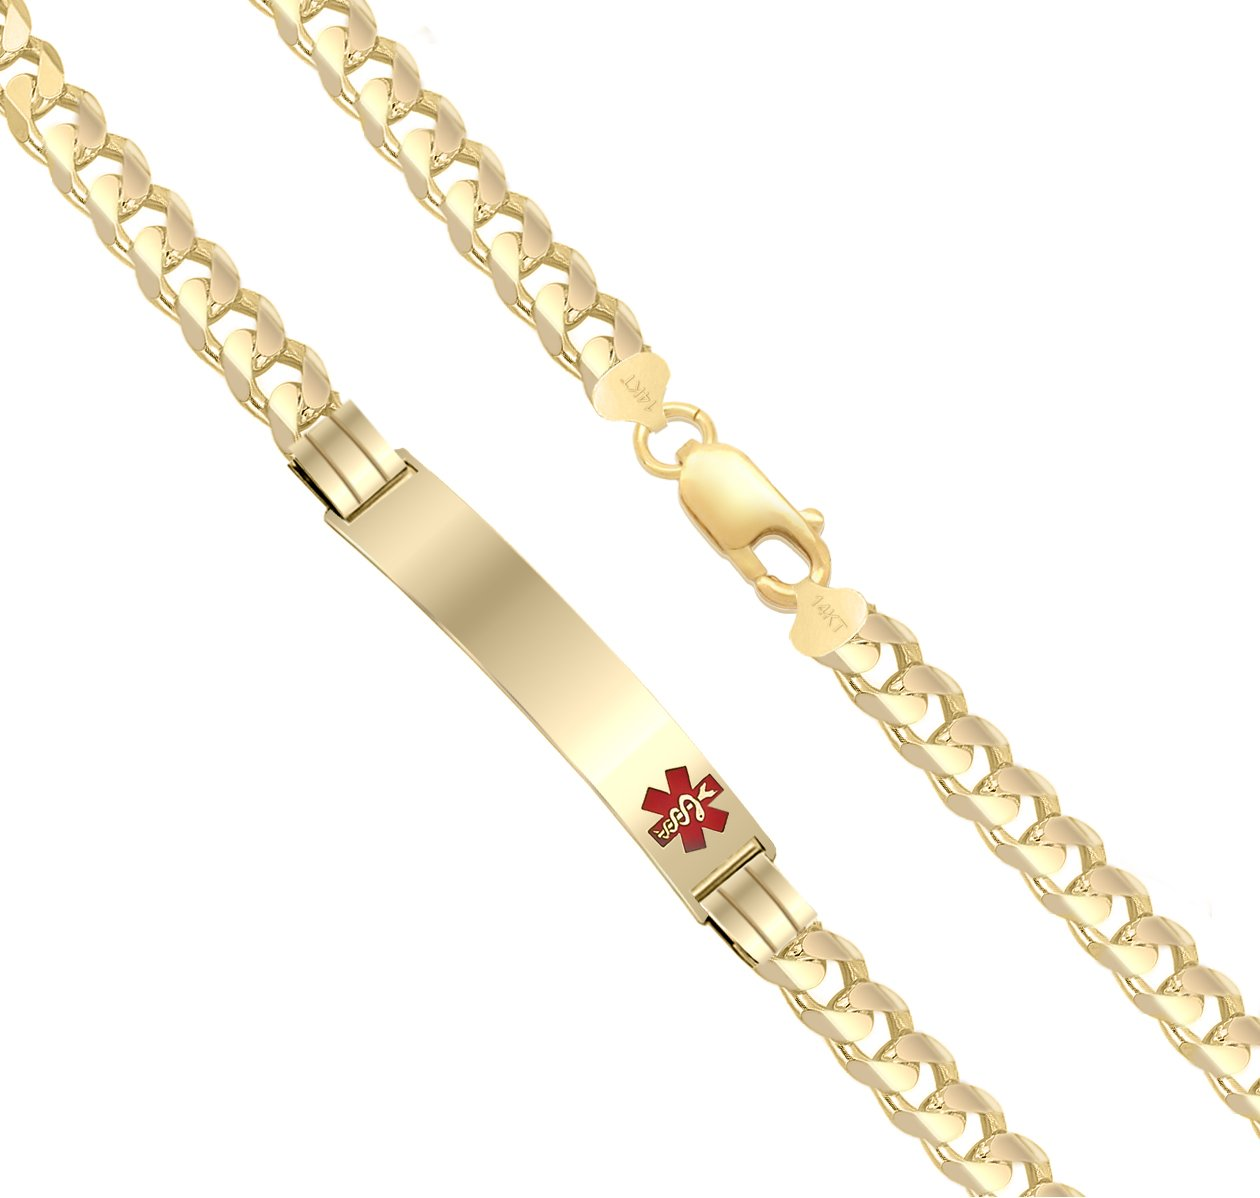 US Jewels And Gems Customizable Ladies 14k Yellow Gold 5.5mm Curb Medical Alert ID Bracelet with Free Engraving, 5.5in